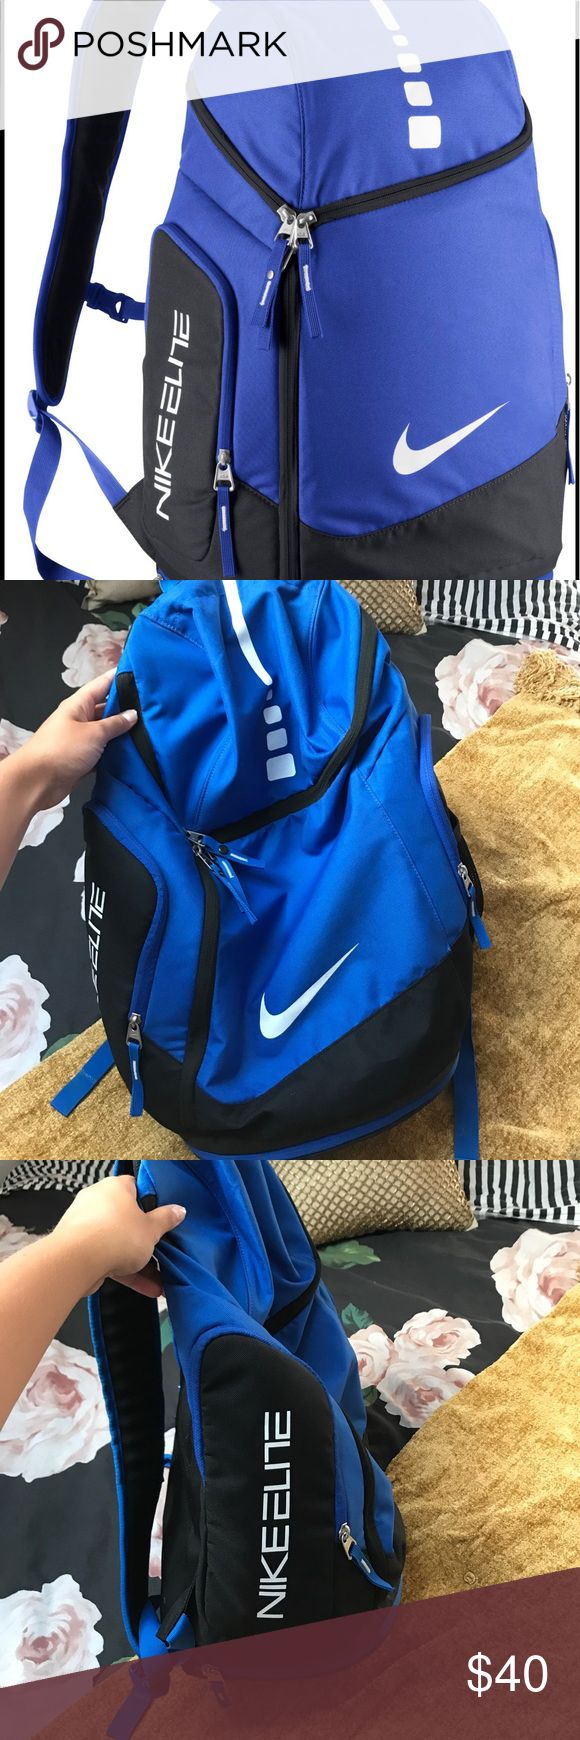 Nike Elite bag Great Nike bag, very roomy to fit as much as you need. Used only a few times. Still in great condition. 😊 Nike Bags Backpacks